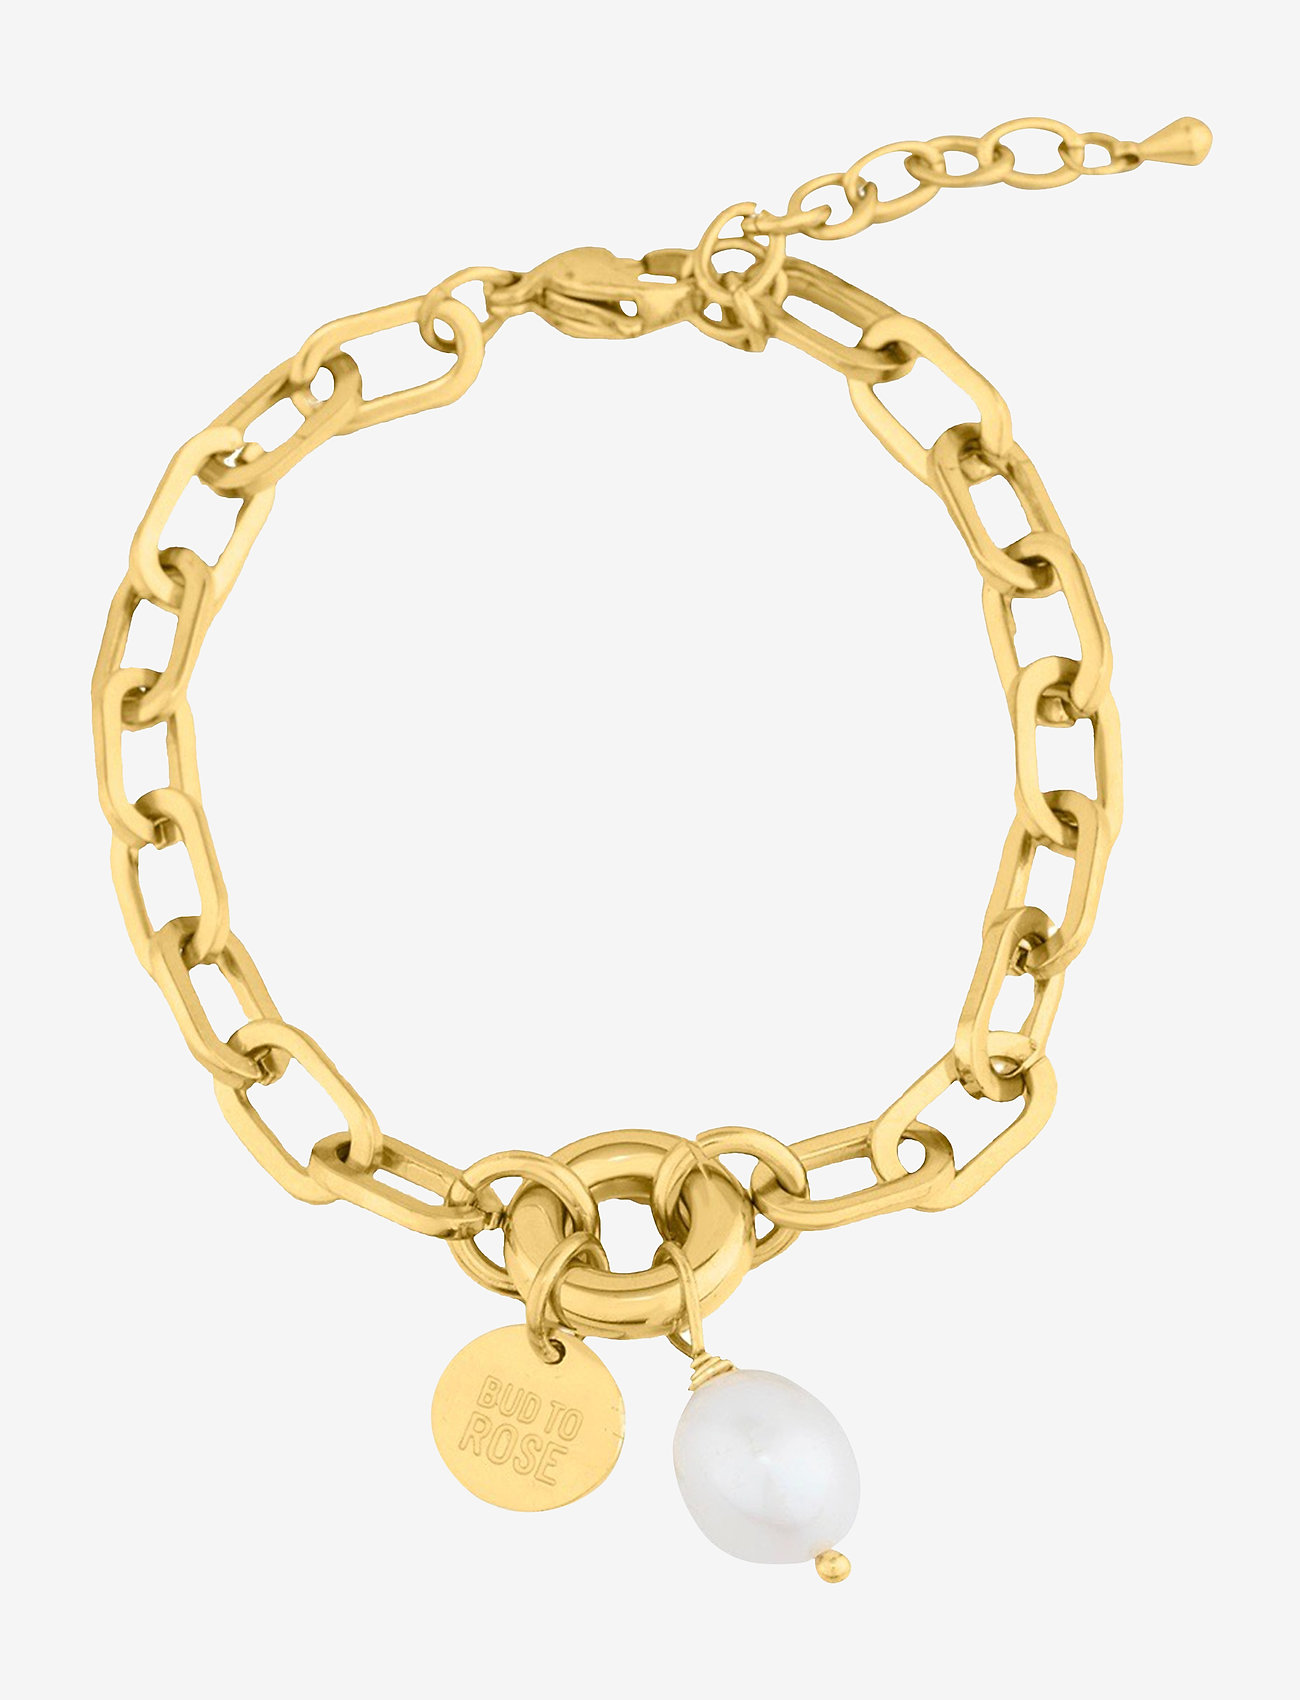 Bud to rose - Devious Pearl Link Bracelet - dainty - gold - 0